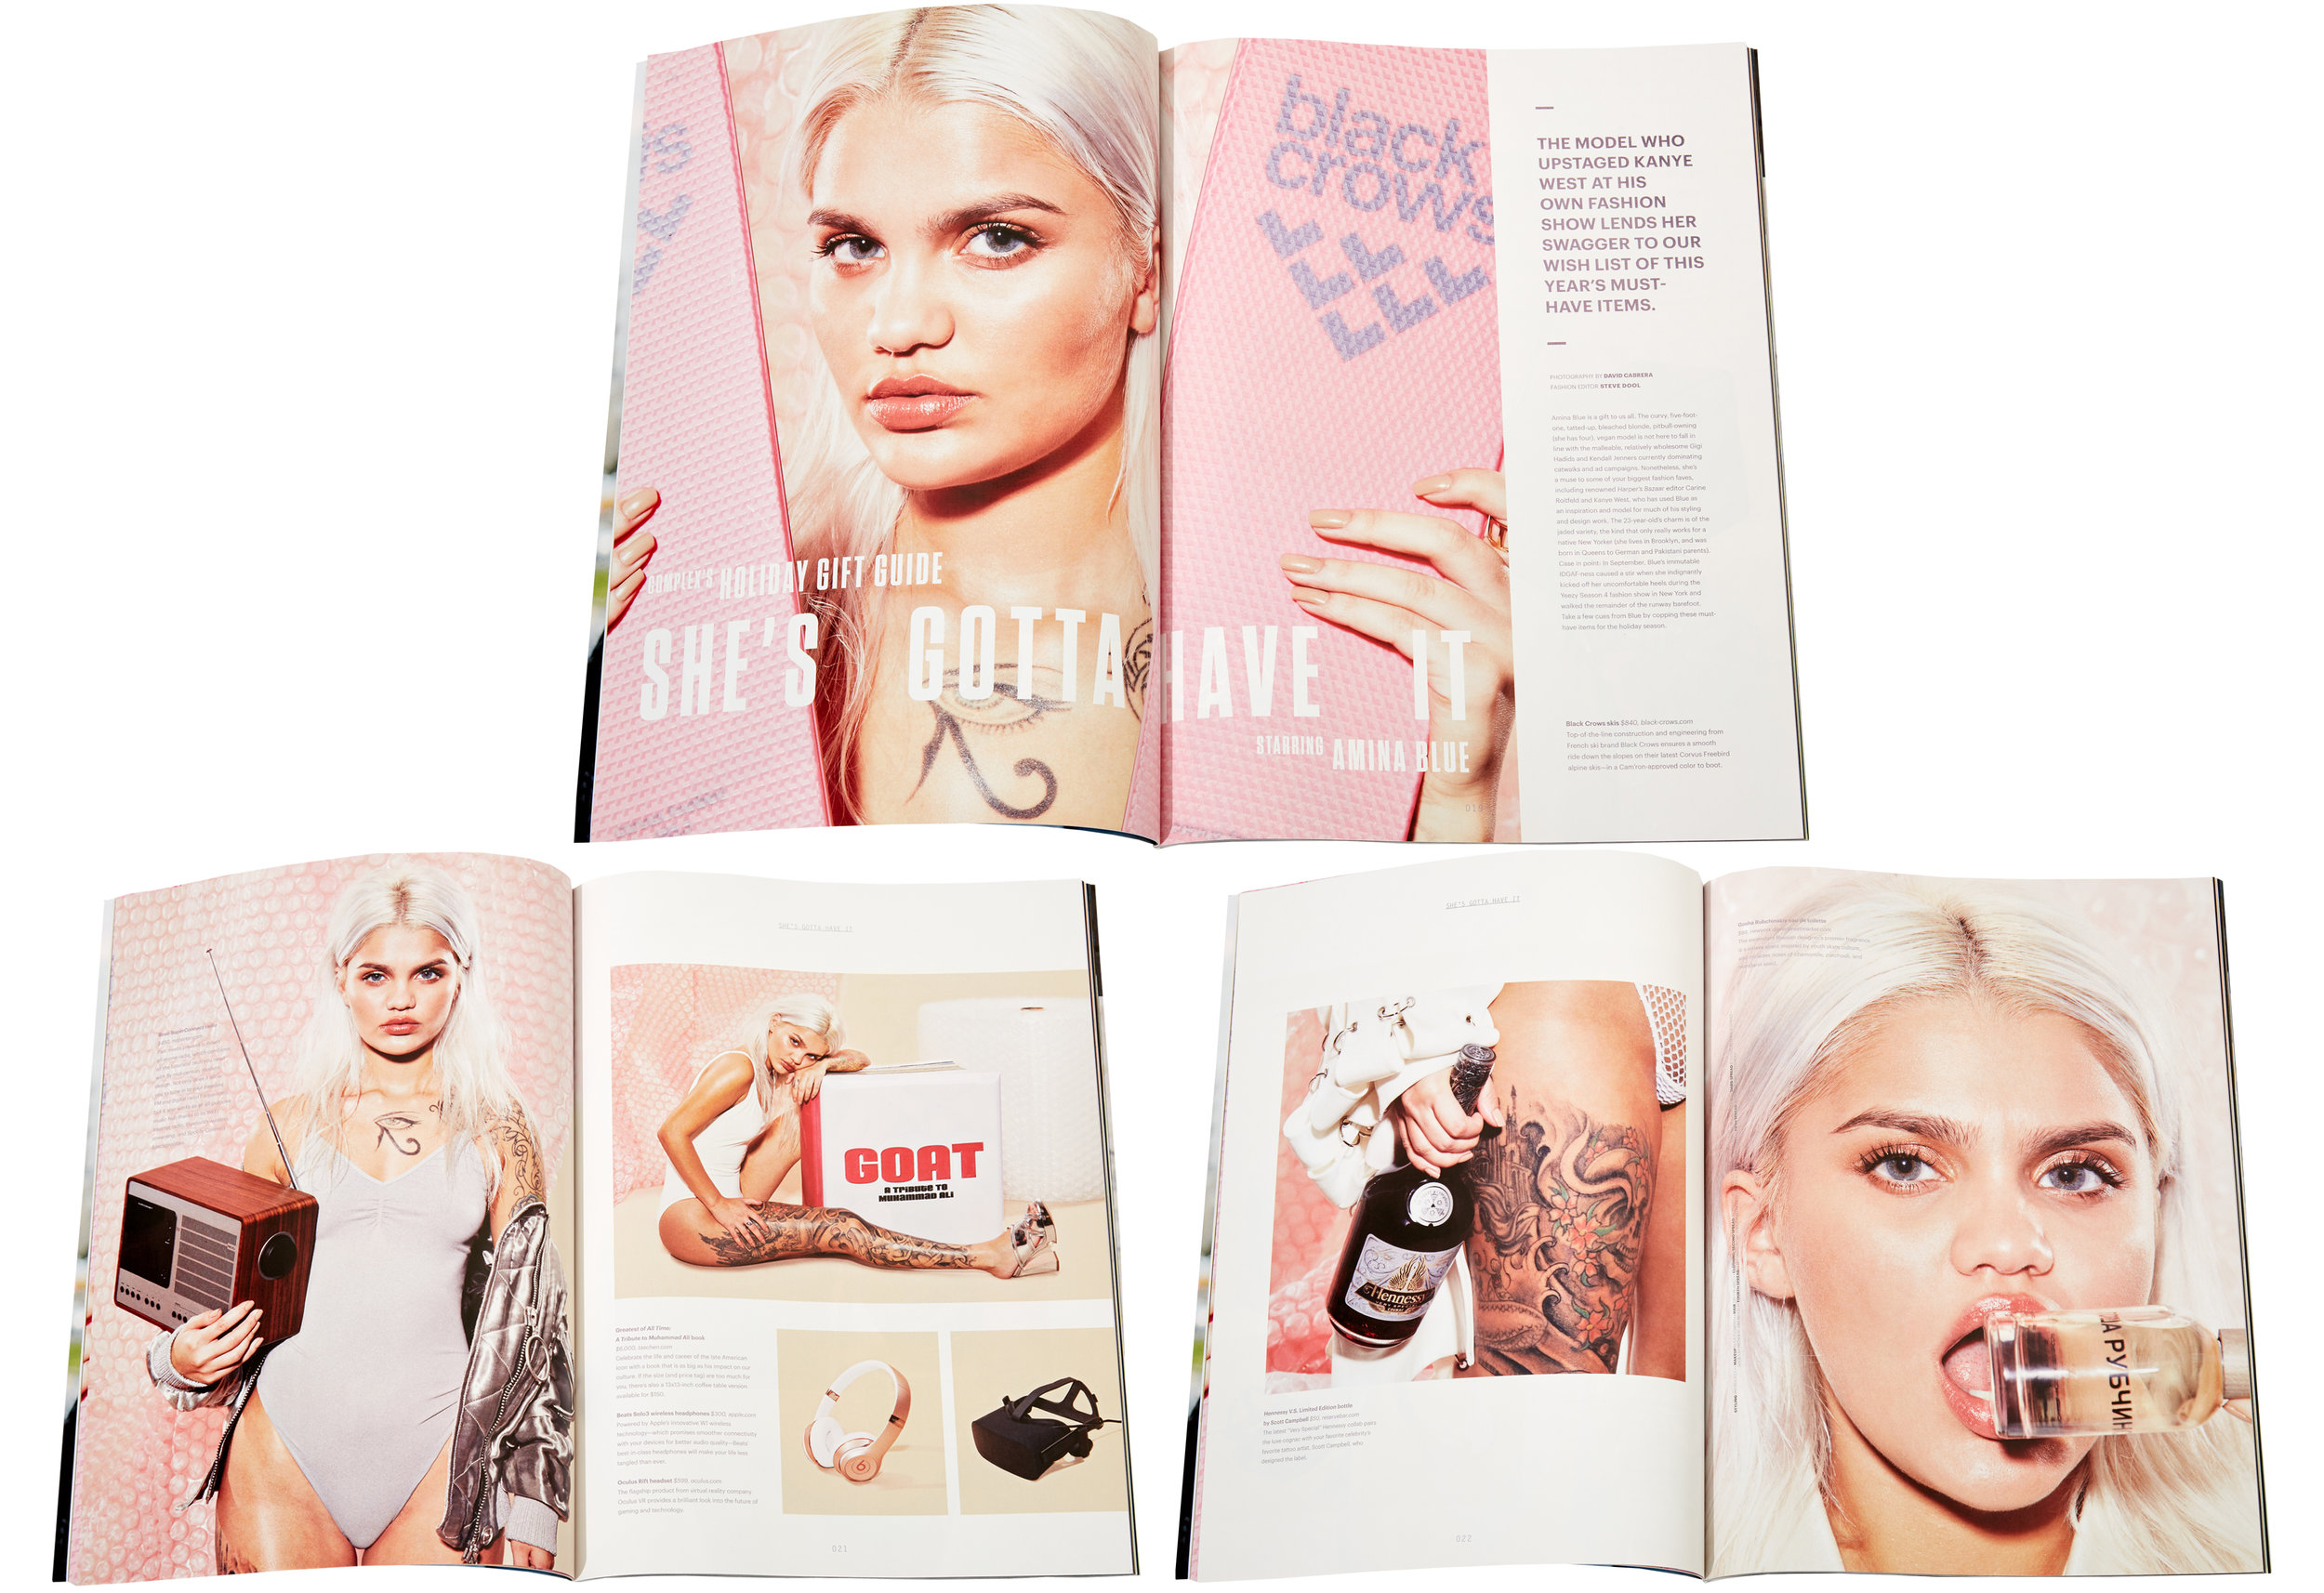 Amina Blue Holiday Gift Guide - Complex - Dec 2016 / Jan 2017